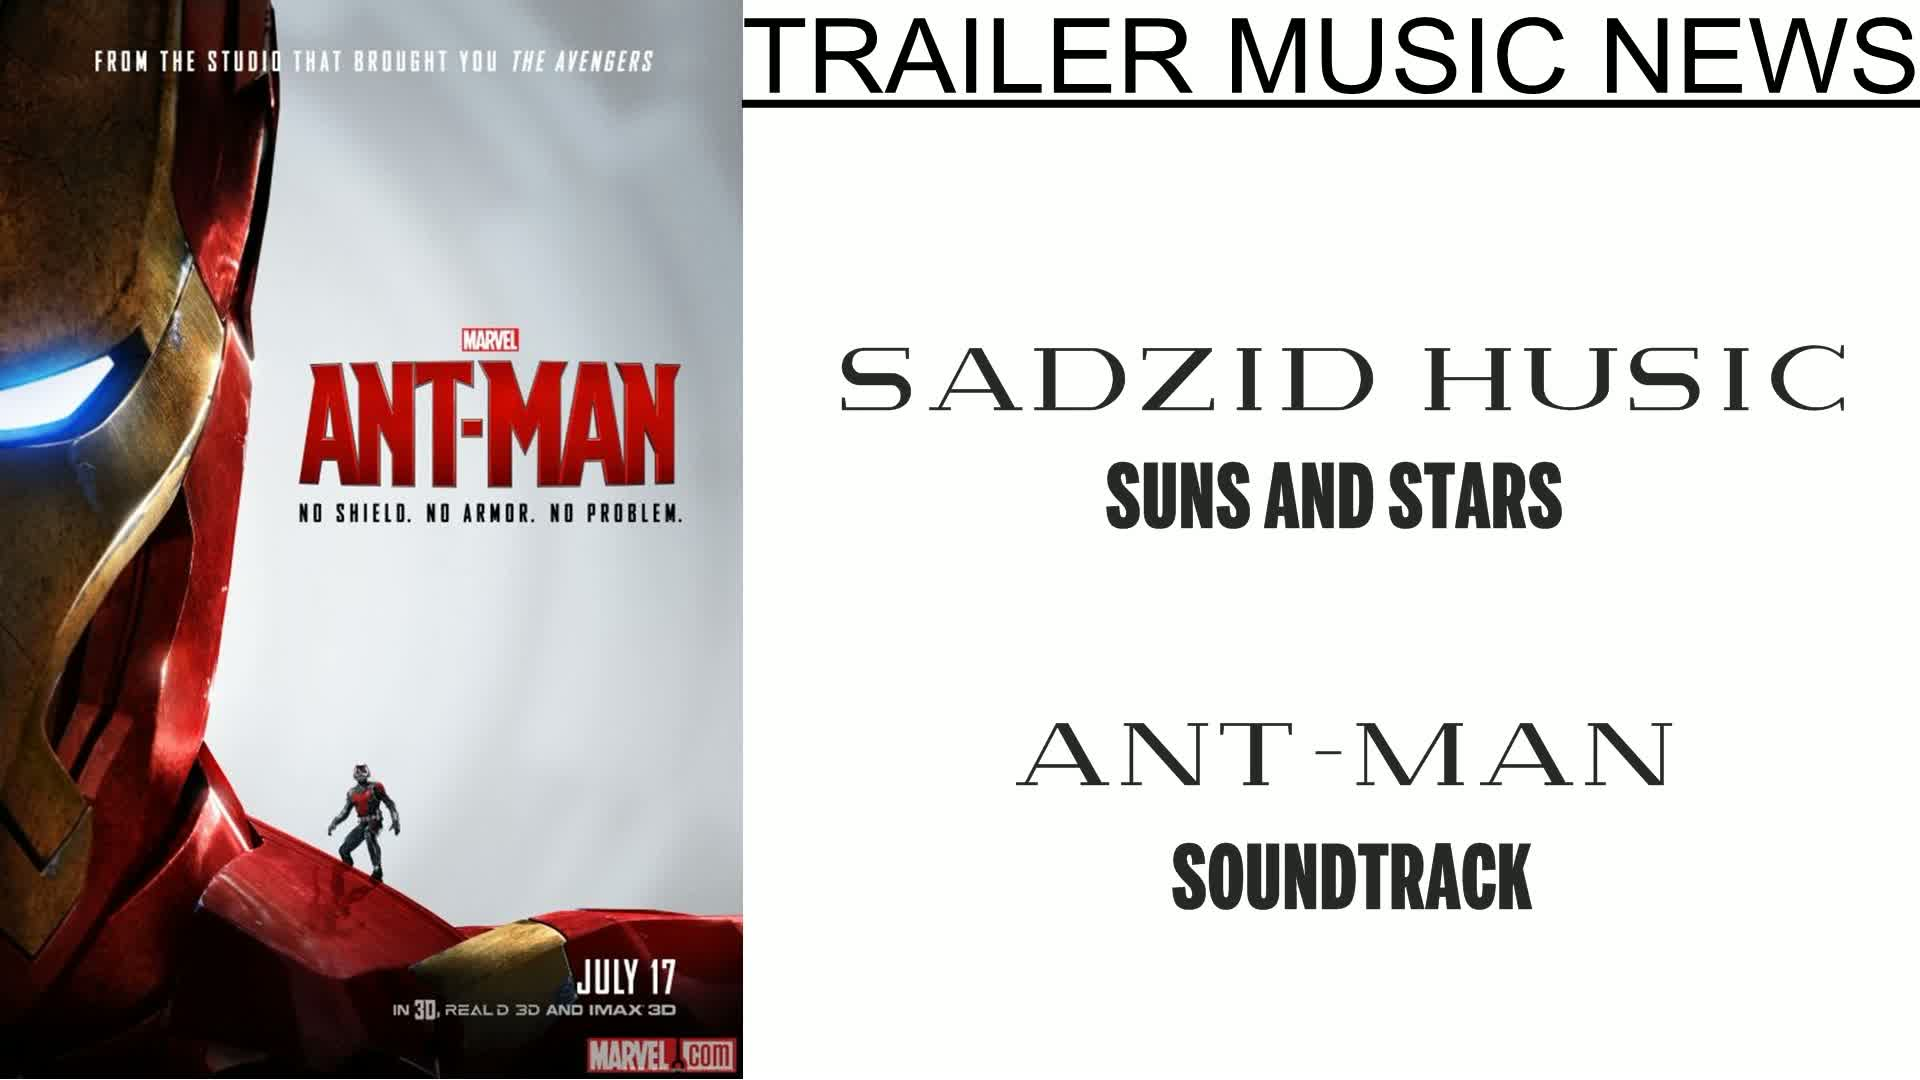 Sadzid Husic - Suns and Stars (ANT-MAN)